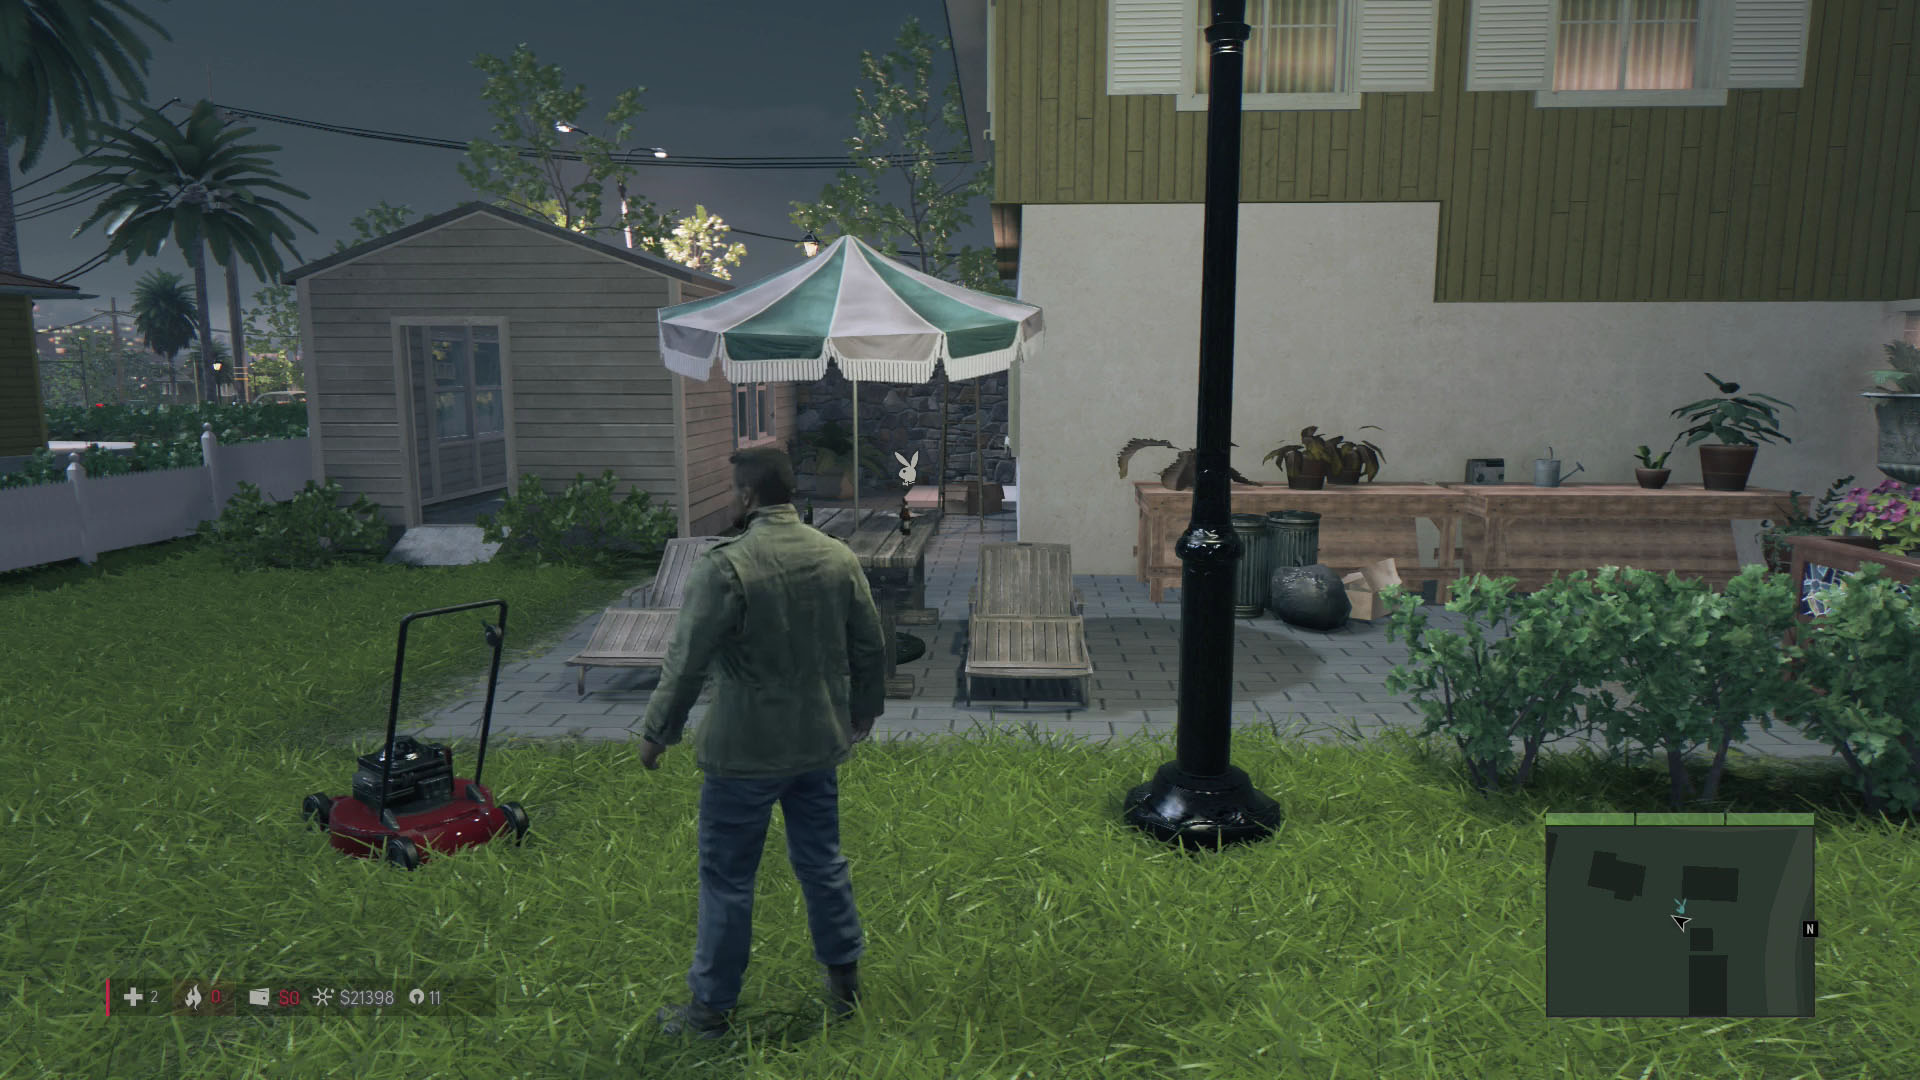 mafia 3 all playboy magazine locations levelcamp guides news